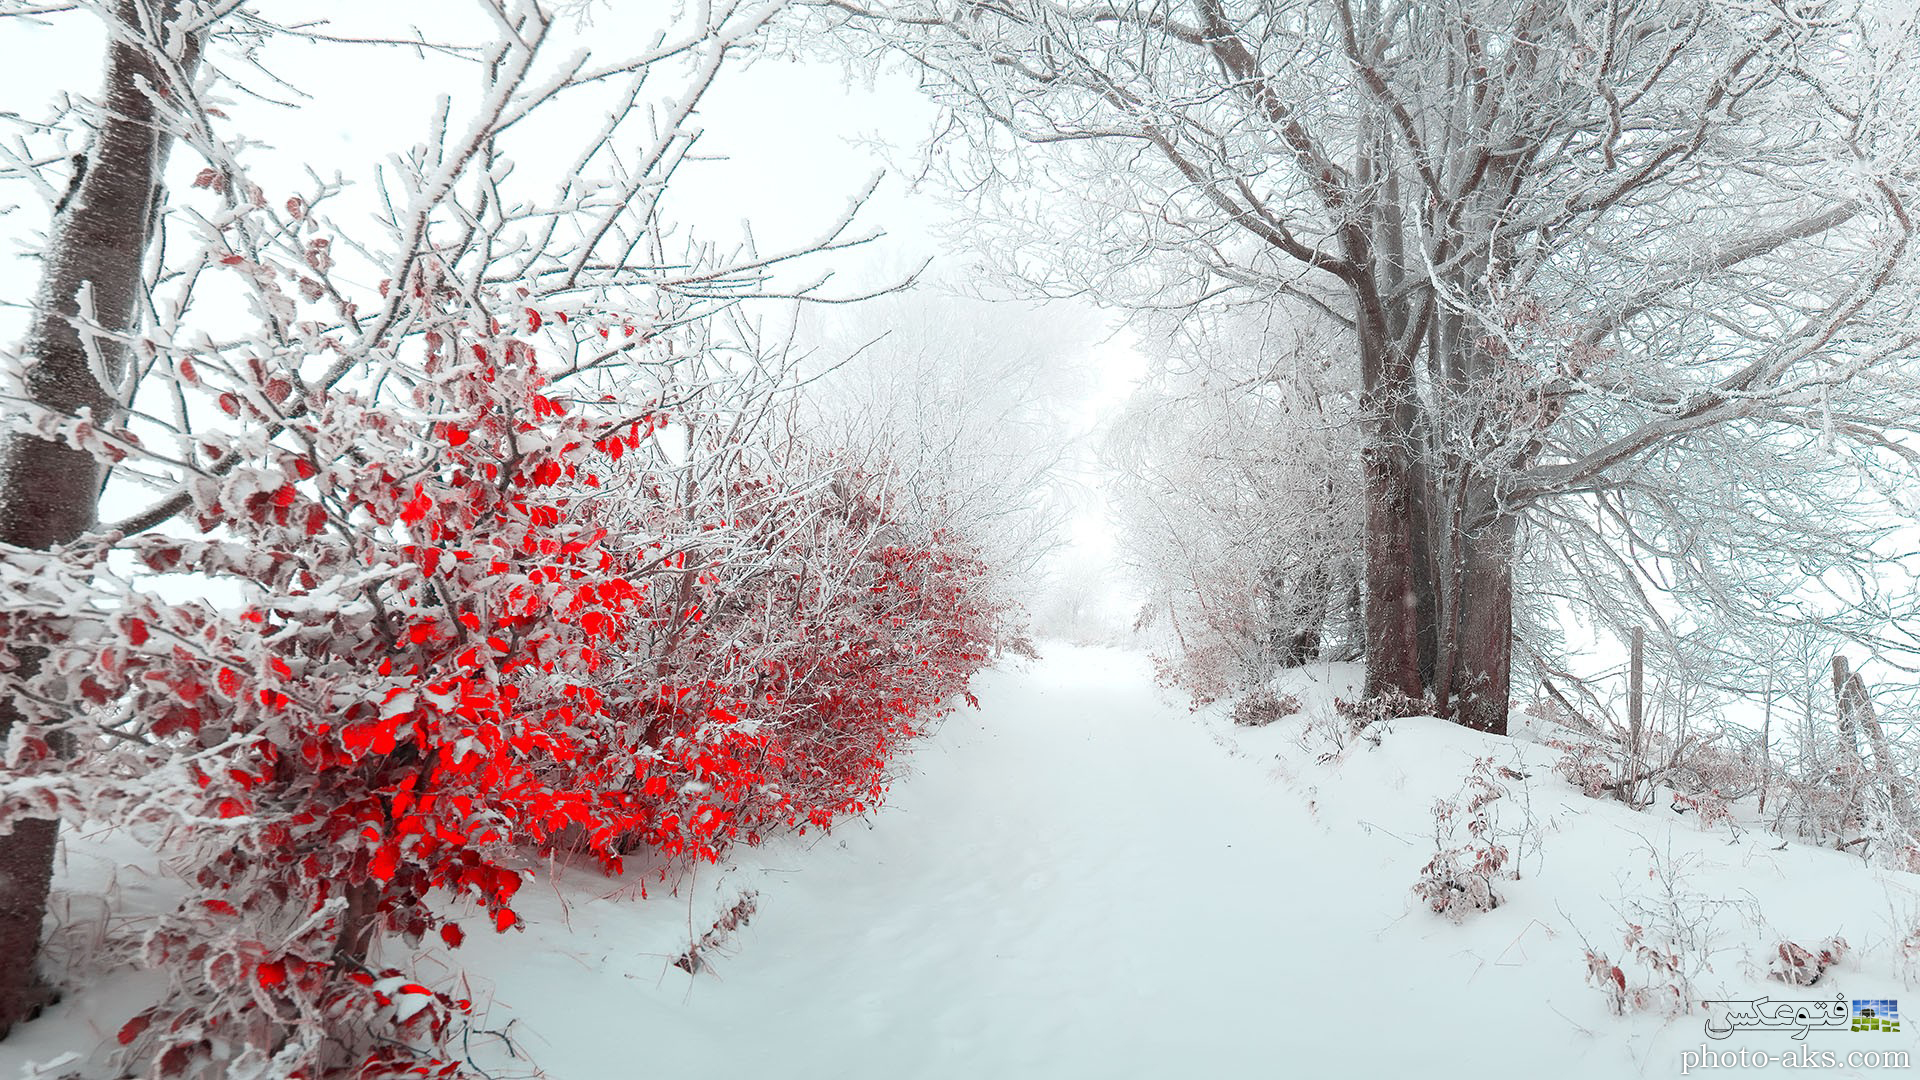 http://pic.photo-aks.com/photo/nature/season/winter/large/beautiful-nature-winter.jpg